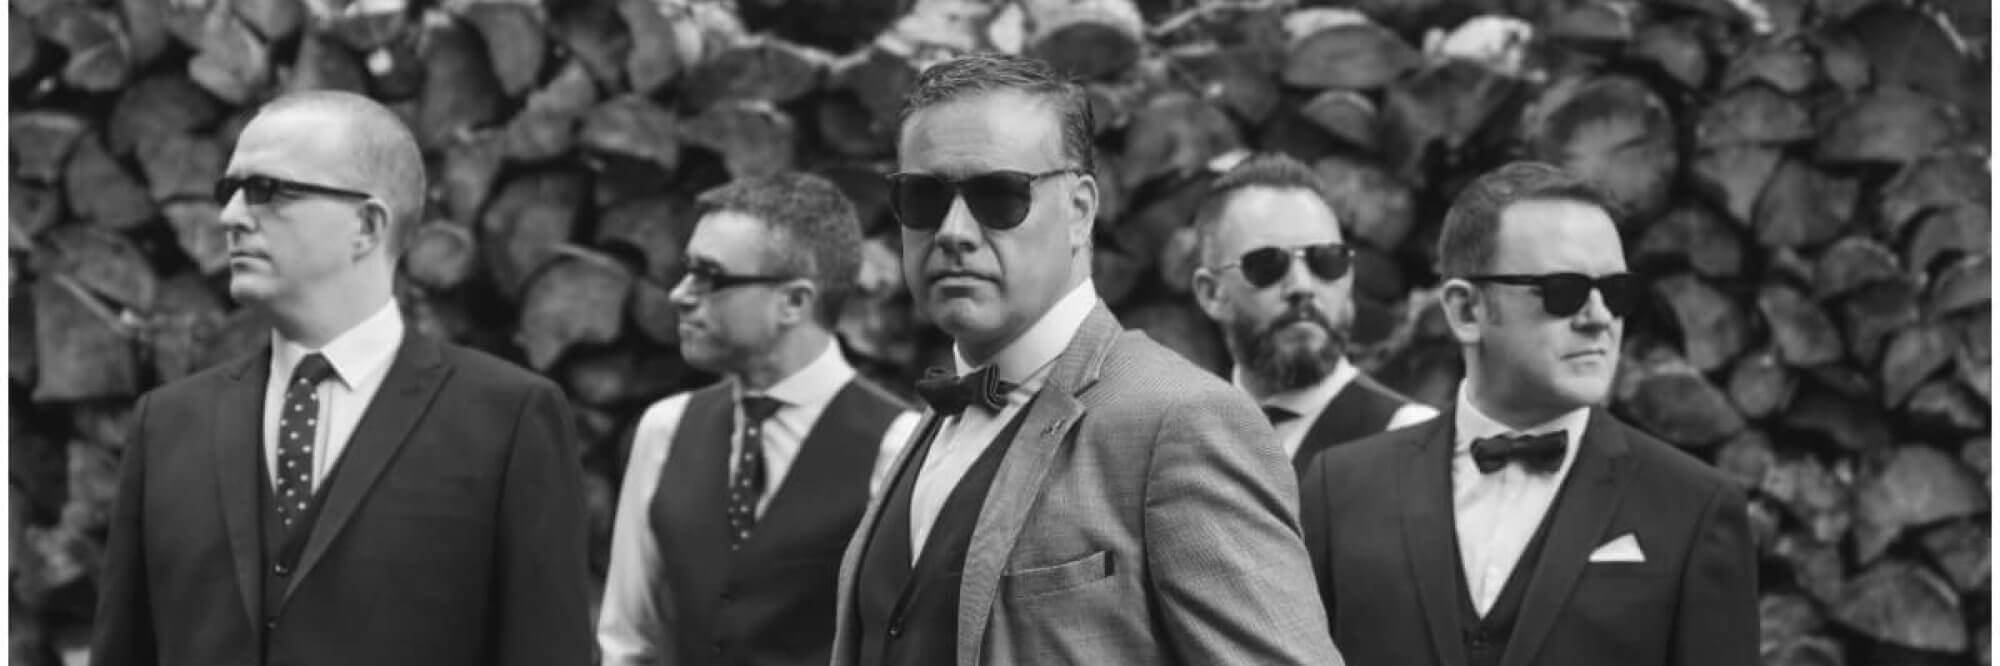 Wedding Bands Ireland | The Jukebox Kings